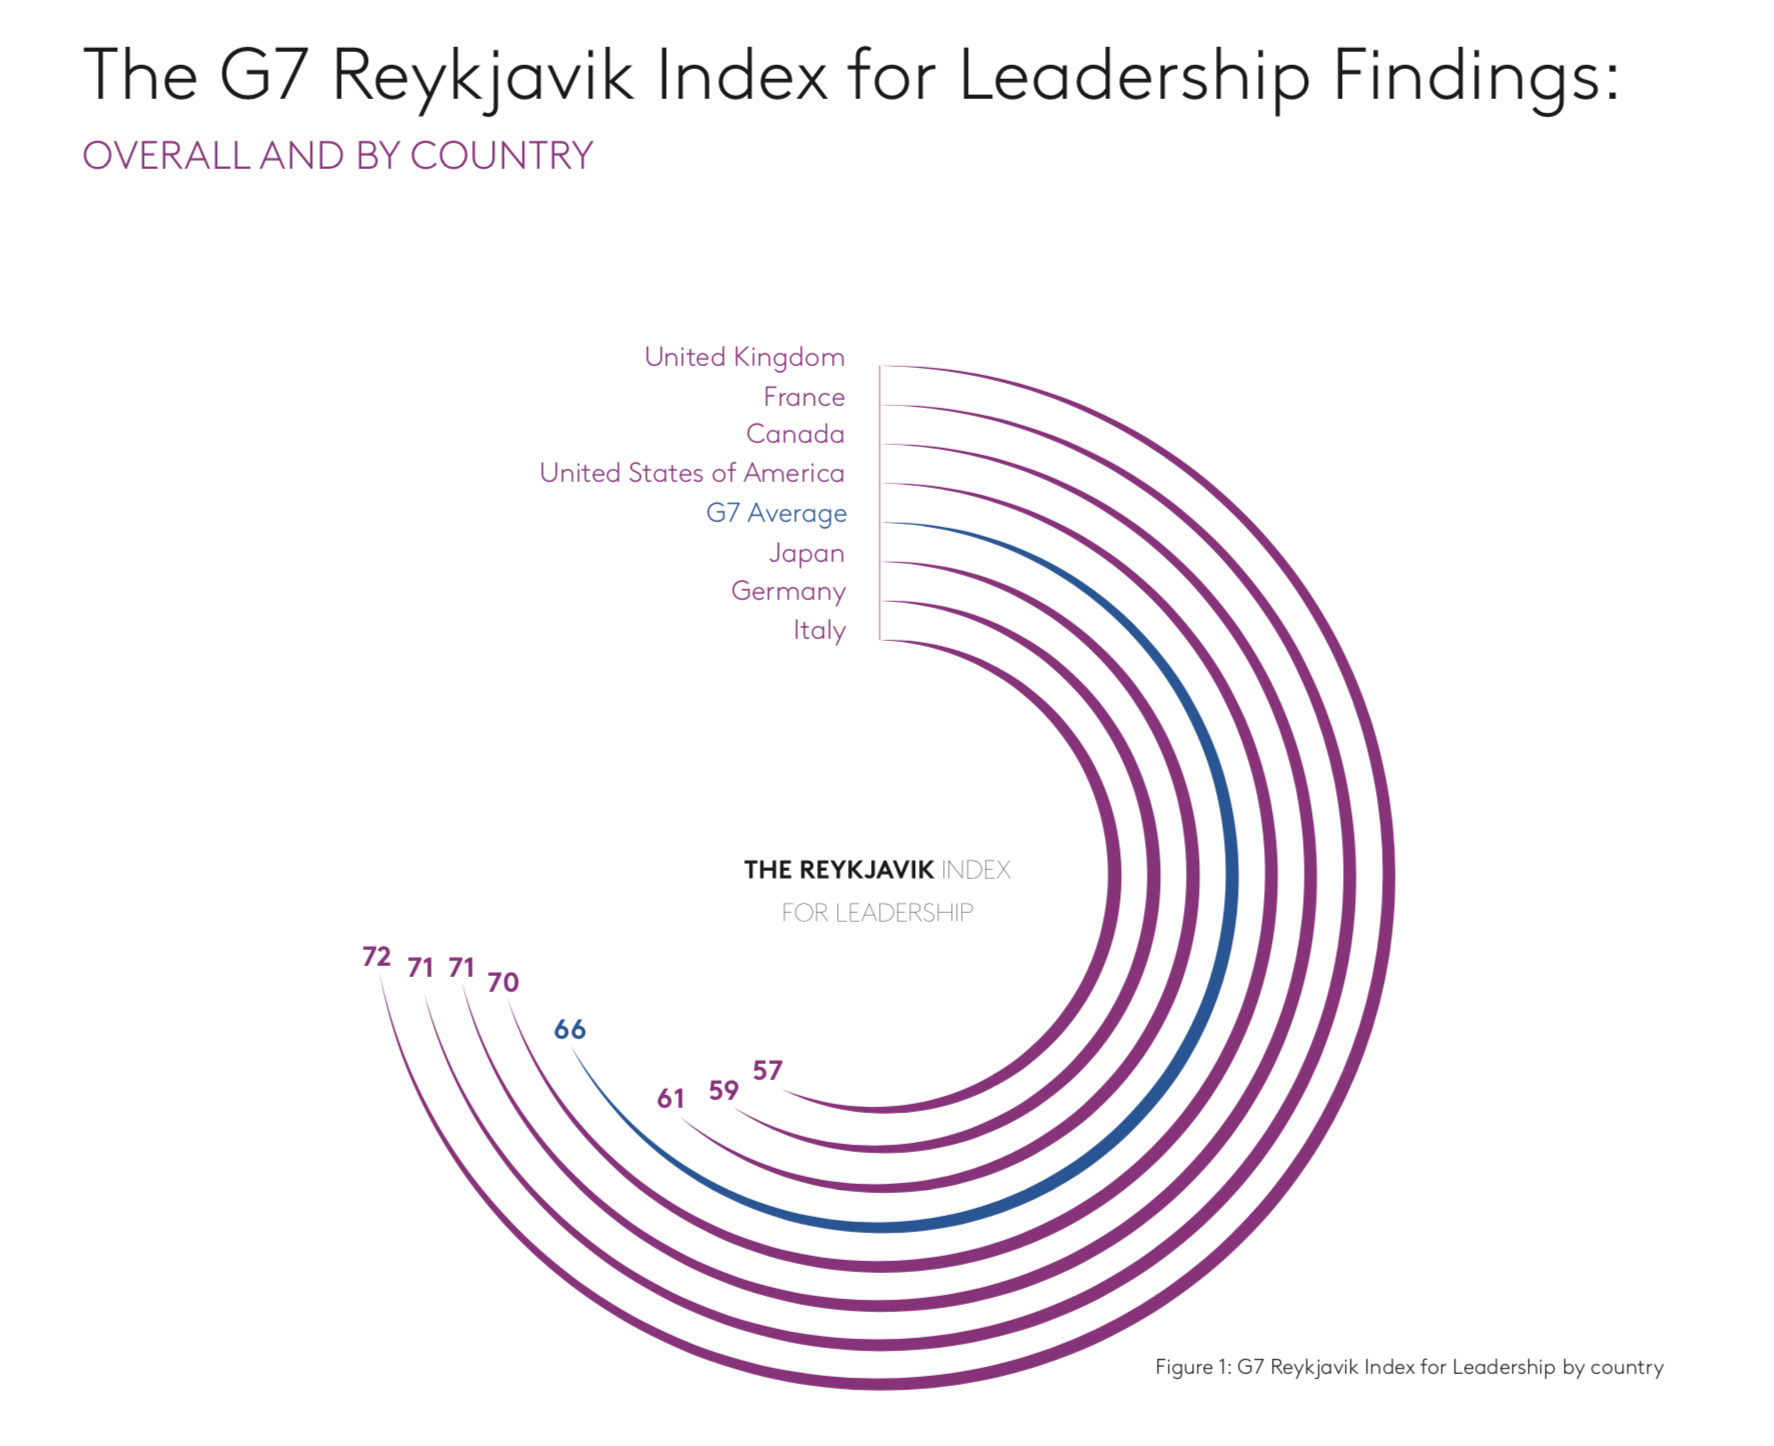 Equality of attitudes to women in leadership in the G7 nations, scored out of 100